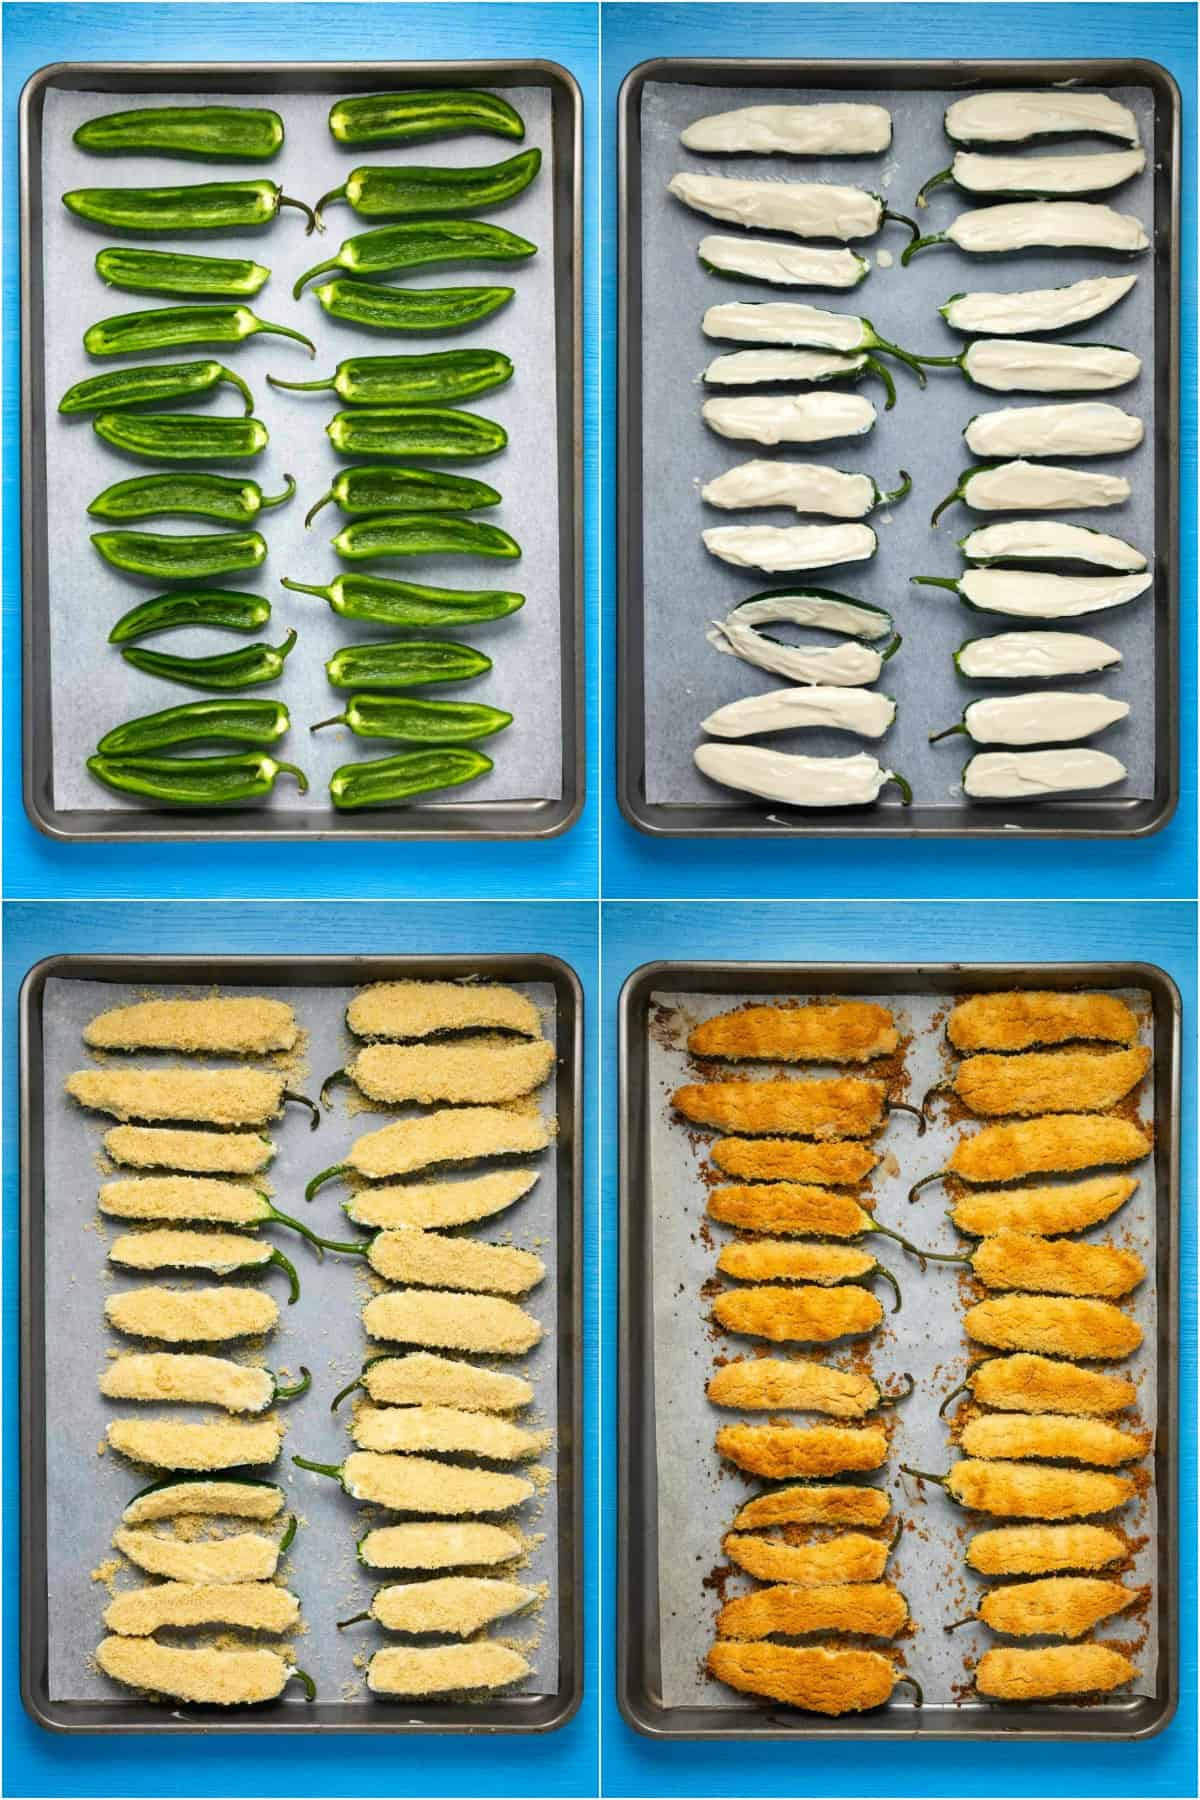 Step by step process photo collage of making baked jalapeño poppers.